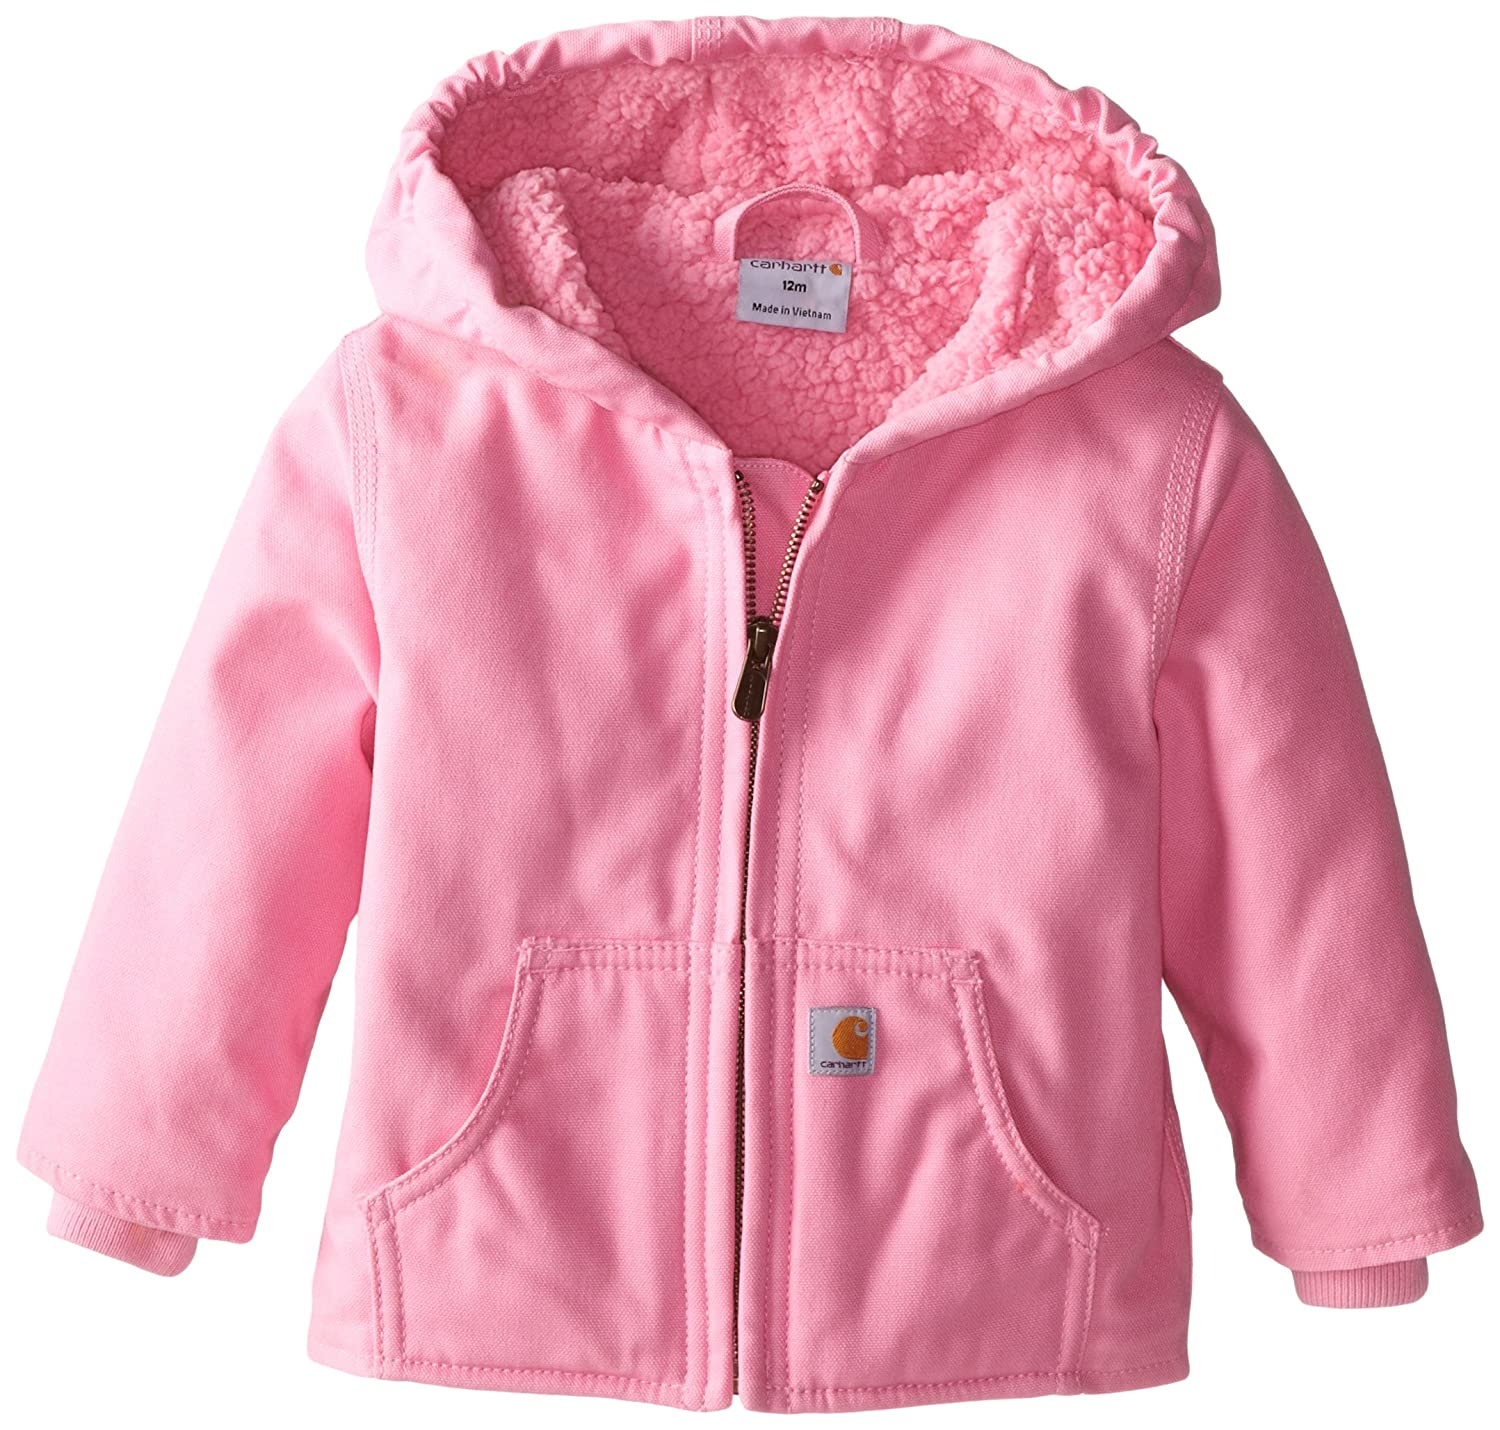 Amazon.com: Carhartt Baby Girls' Redwood Jacket Sherpa Lined: Clothing